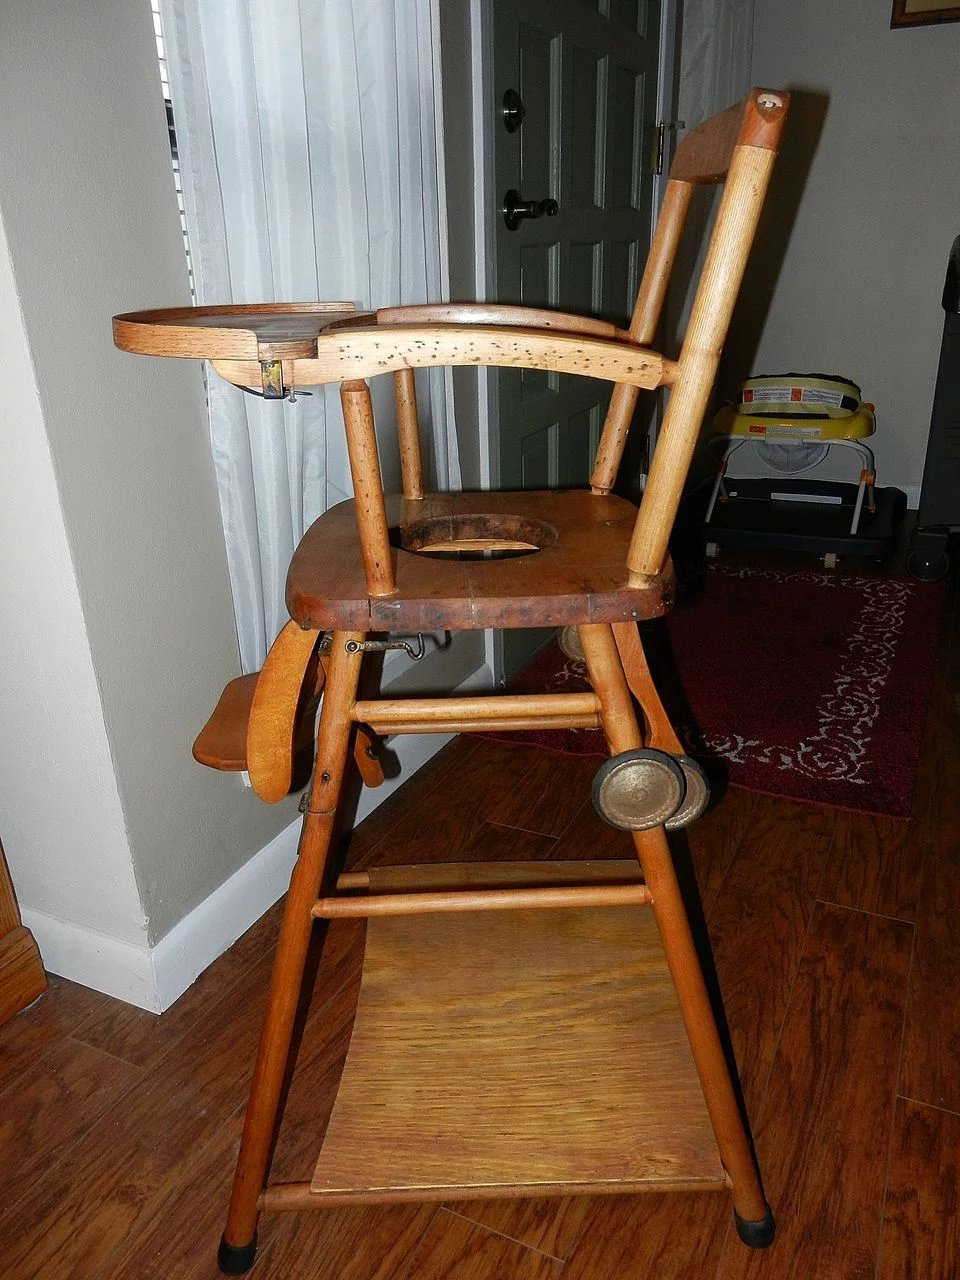 Vintage Wooden High Chair, Potty Chair and Play Chair in One. Click to  expand - Vintage Wooden High Chair, Potty Chair And Play Chair In One : My